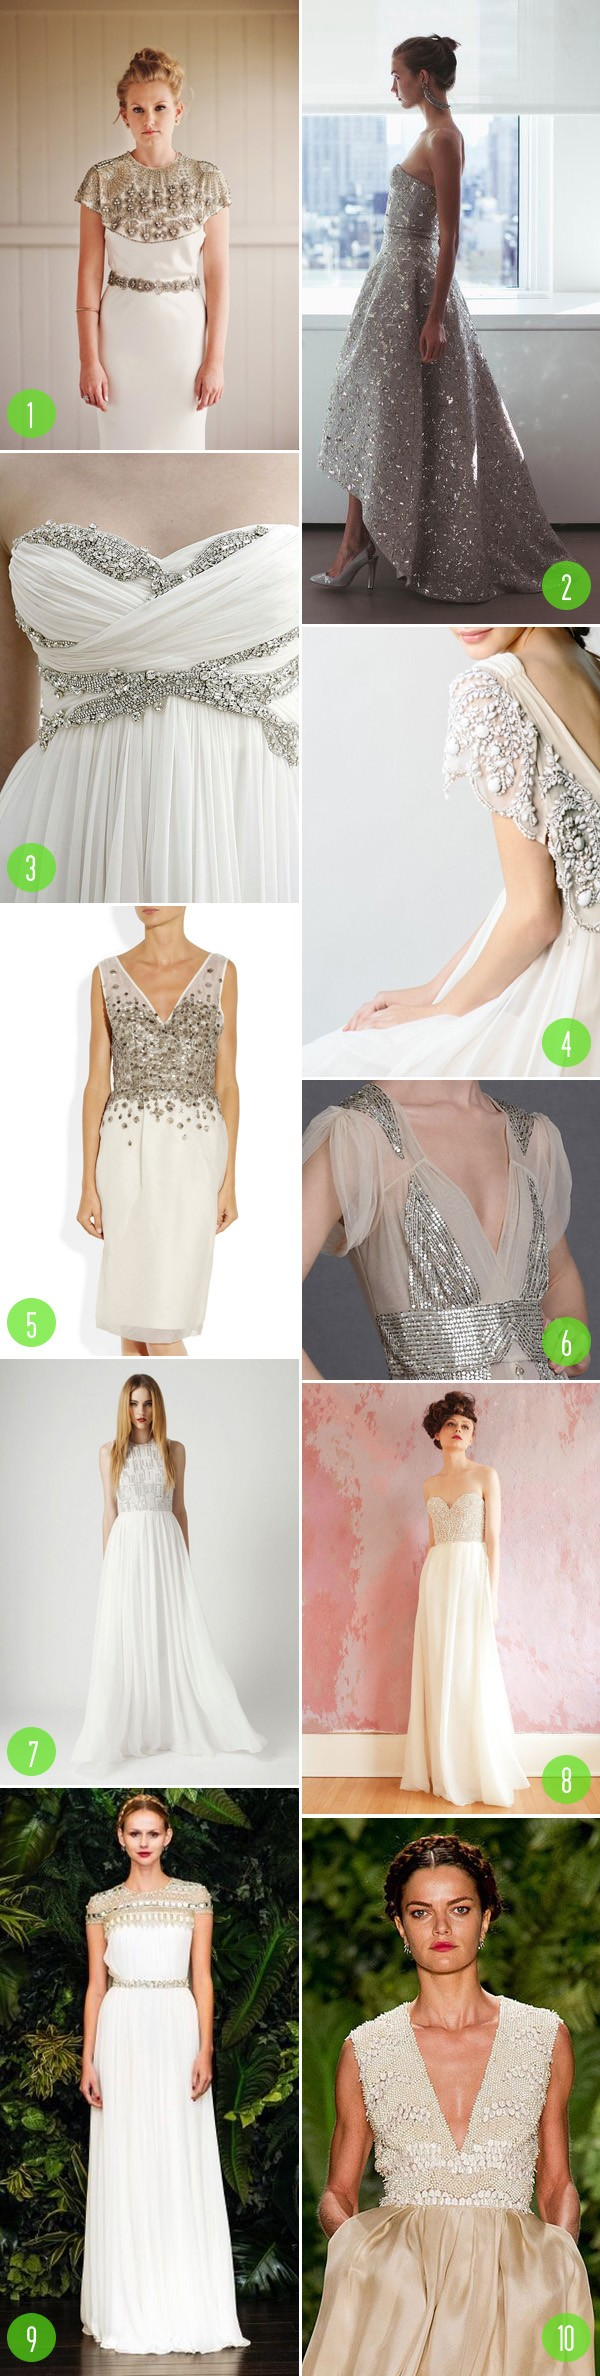 top 10: modern beaded dresses